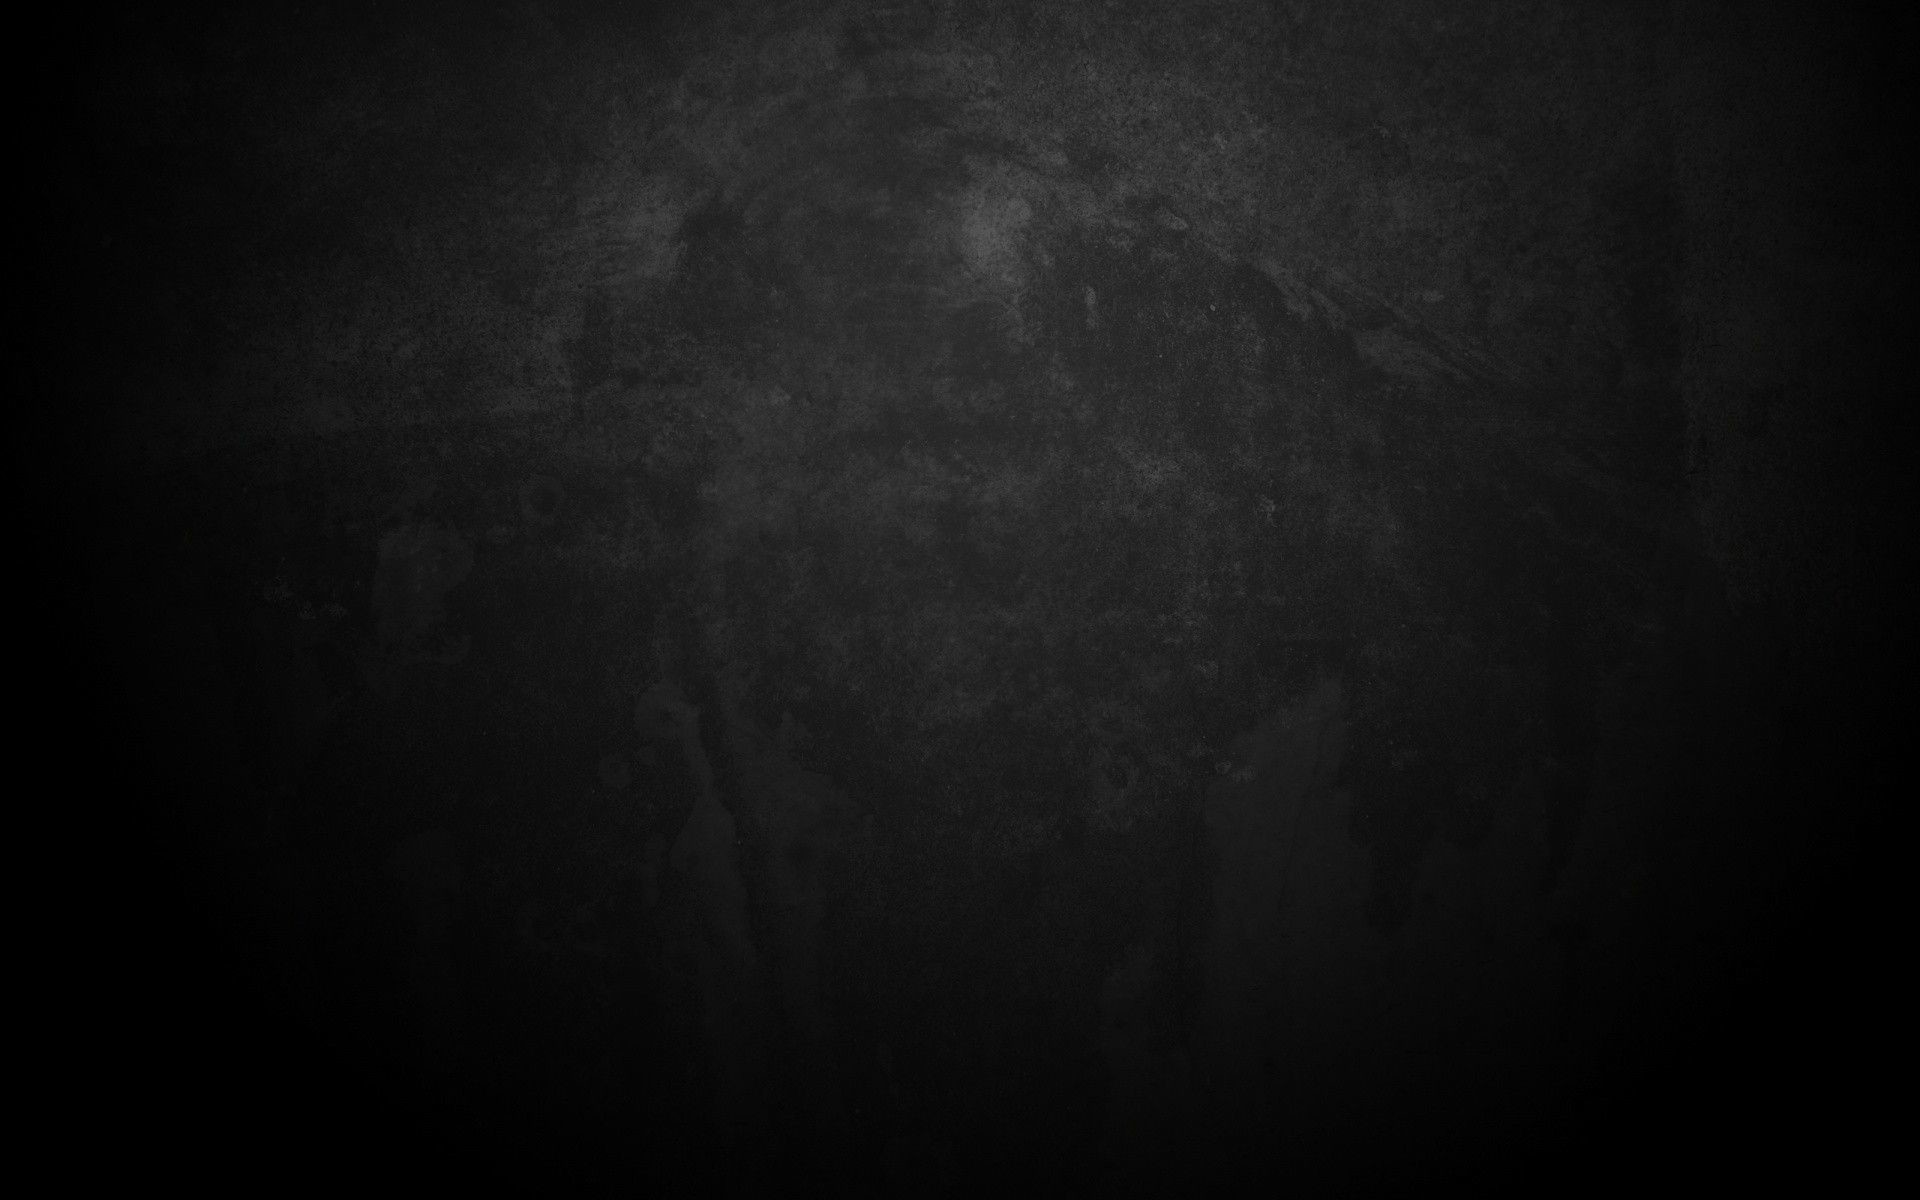 1920x1200 General  simple dark simple background texture black background